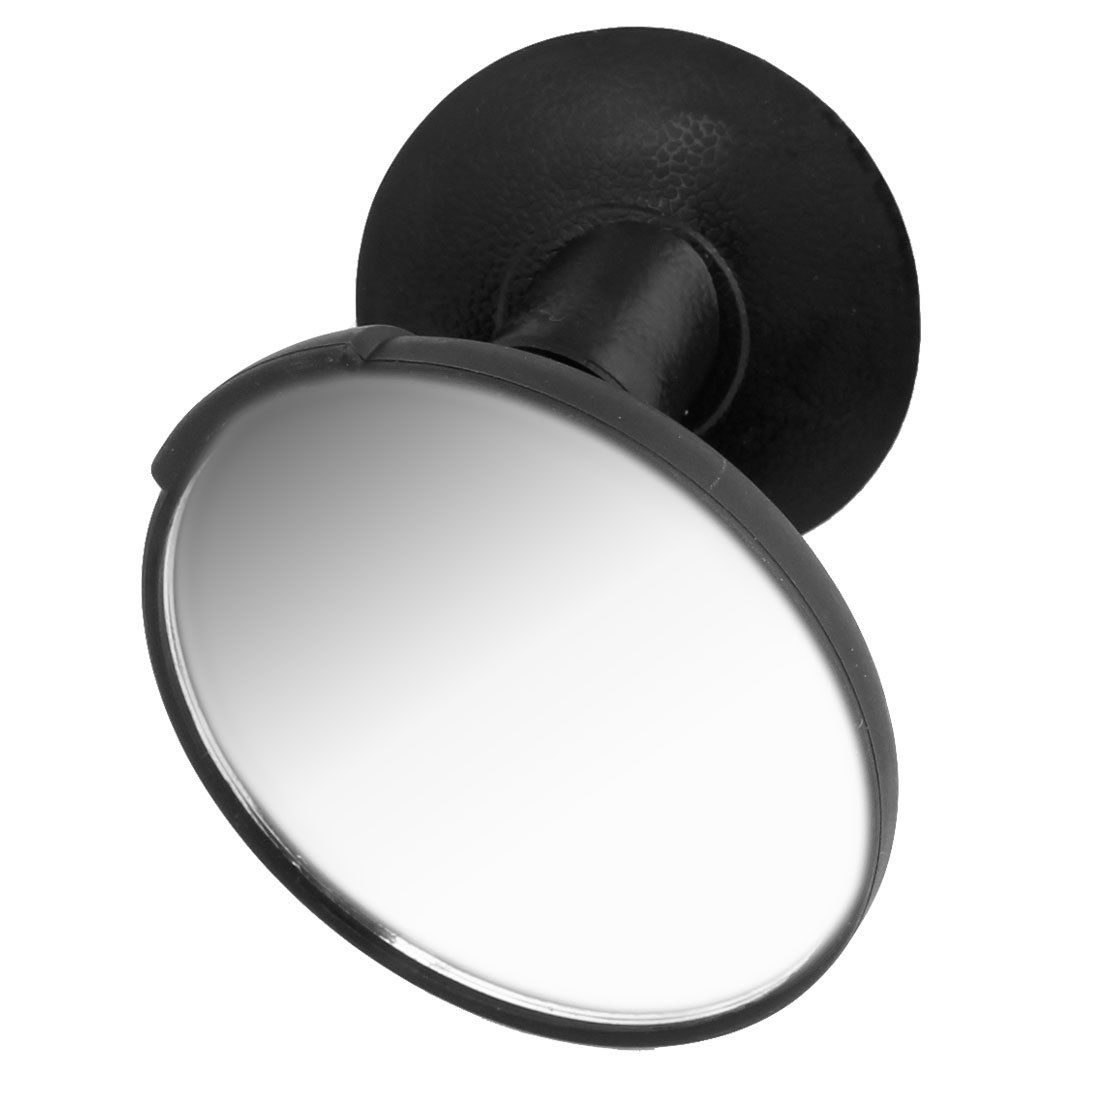 TOYL Car 360 Degree Rotary Rear View Blind Spot Mirror Black